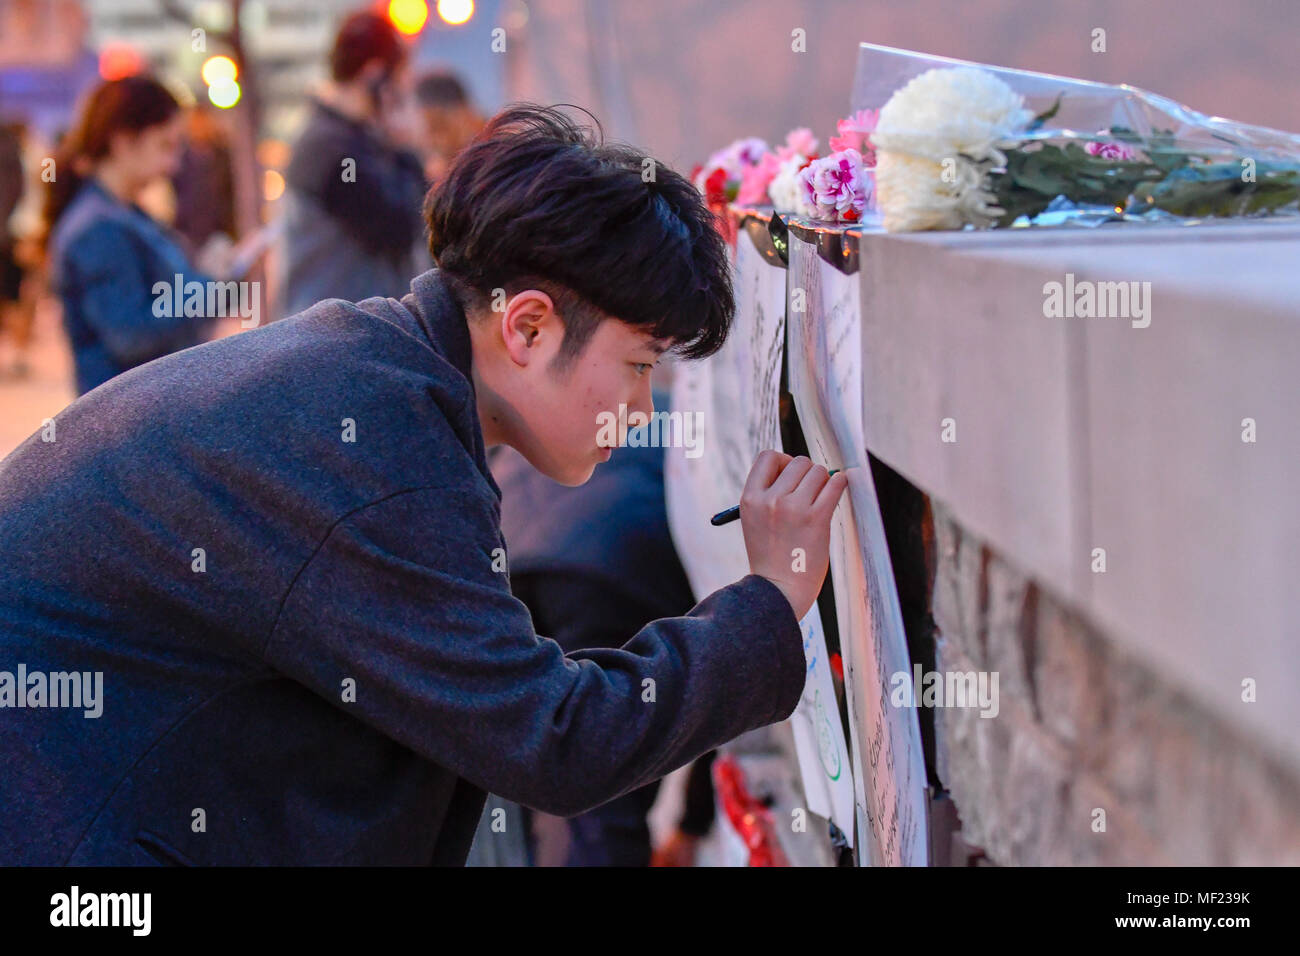 Toronto, Canada. April 23, 2018. Toronto resident  laid flowers and sign condolence messages at a makeshift memorial at the Olive Square for victims from an early van attack that strikes pedestrians on Yonge Street between Finch Ave and Sheppard Ave in North York, Toronto. Credit: EXImages/Alamy Live News - Stock Image